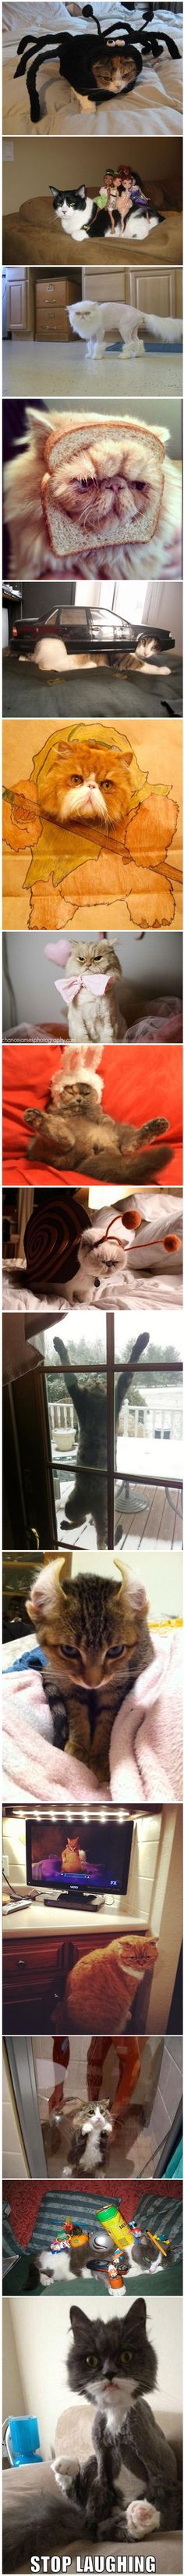 Cats That Really Deserve An Apology (15 pics)